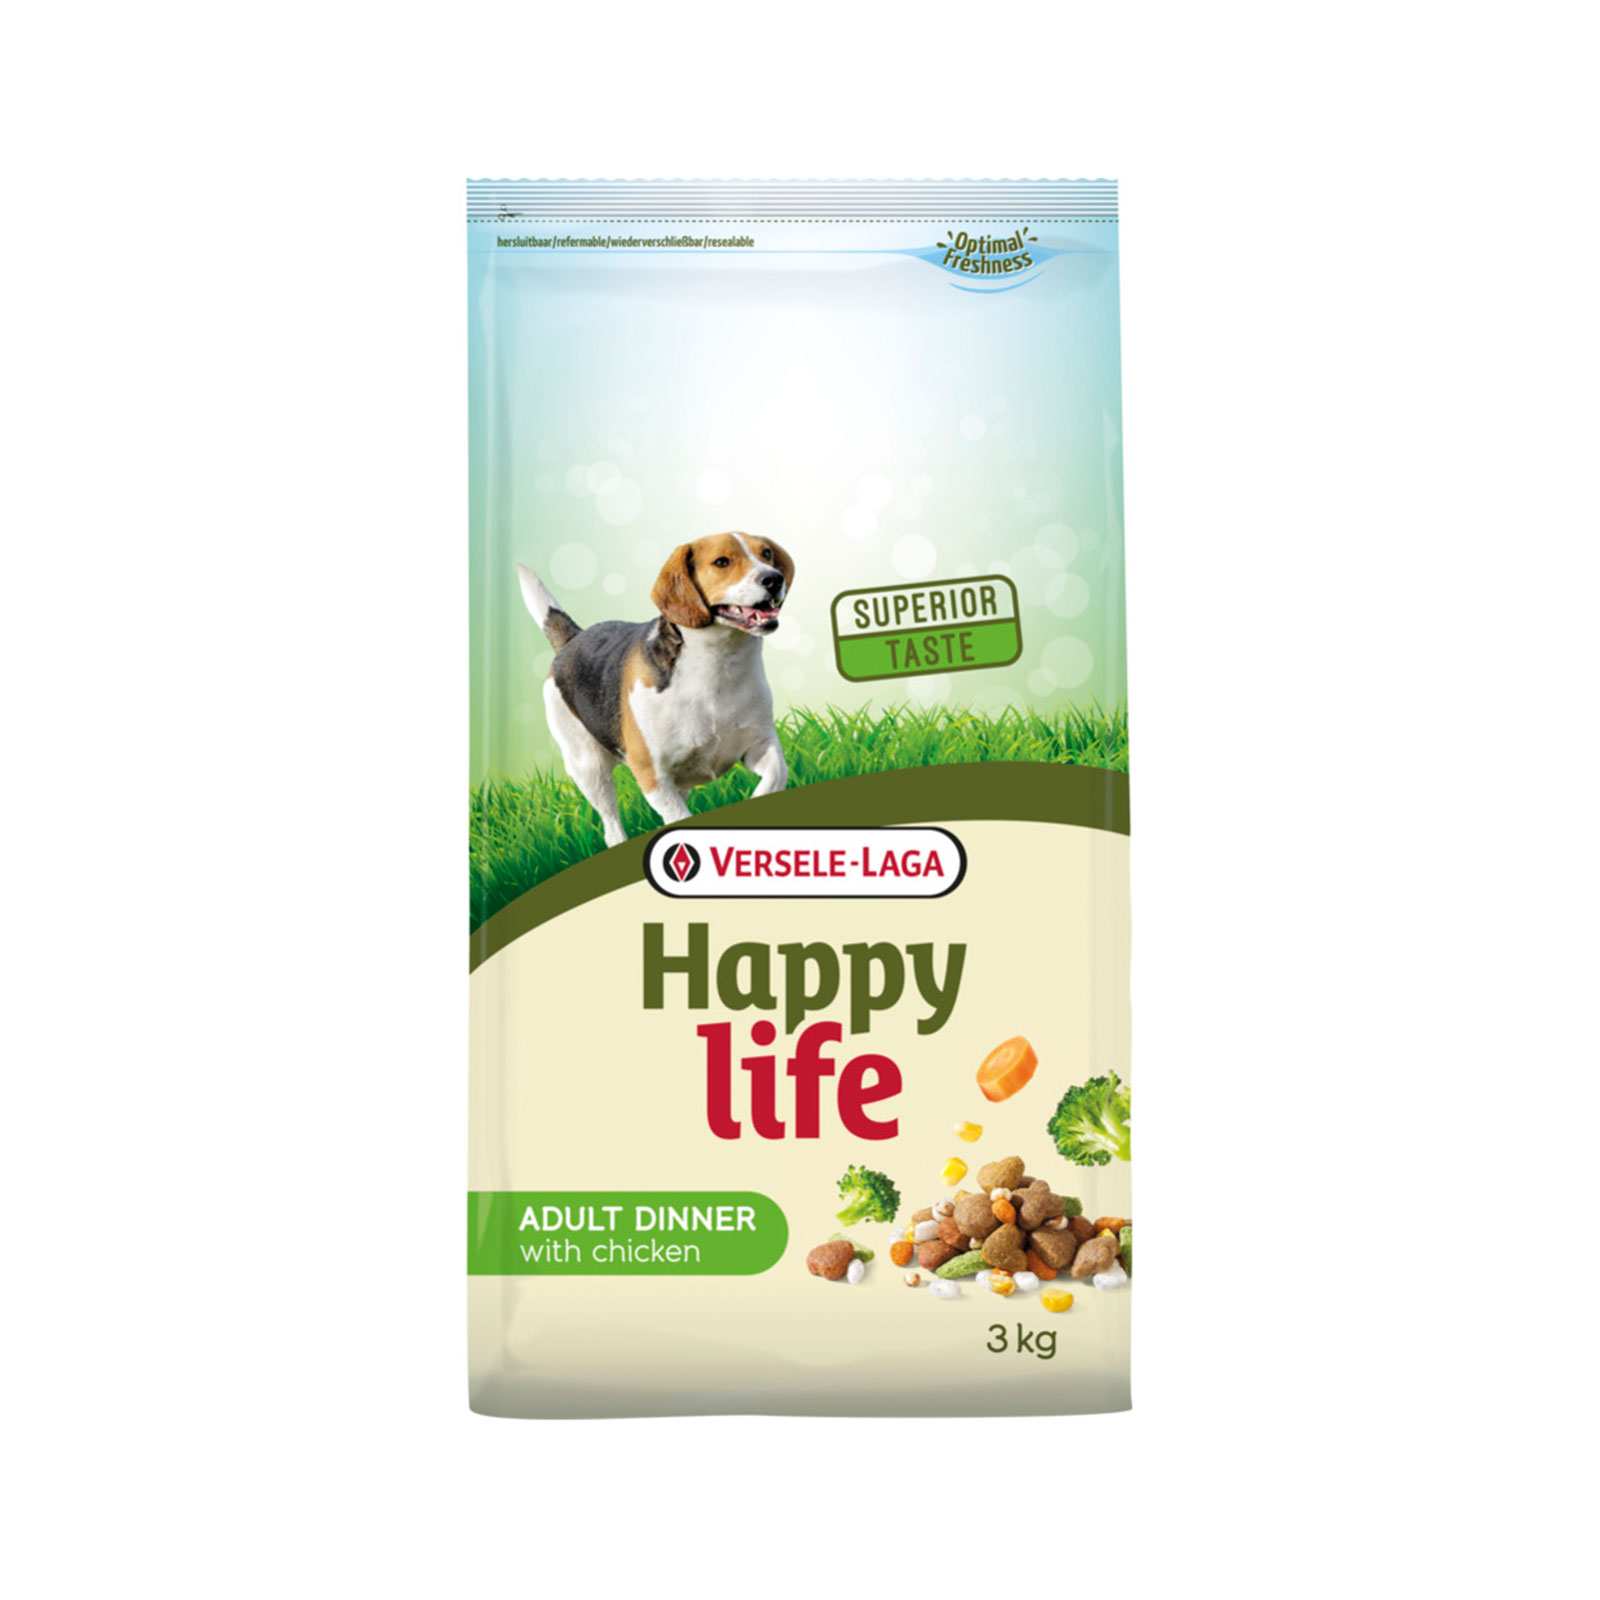 Versele Laga - Happy life Chicken  - Hrana za odrasle pse, piletina